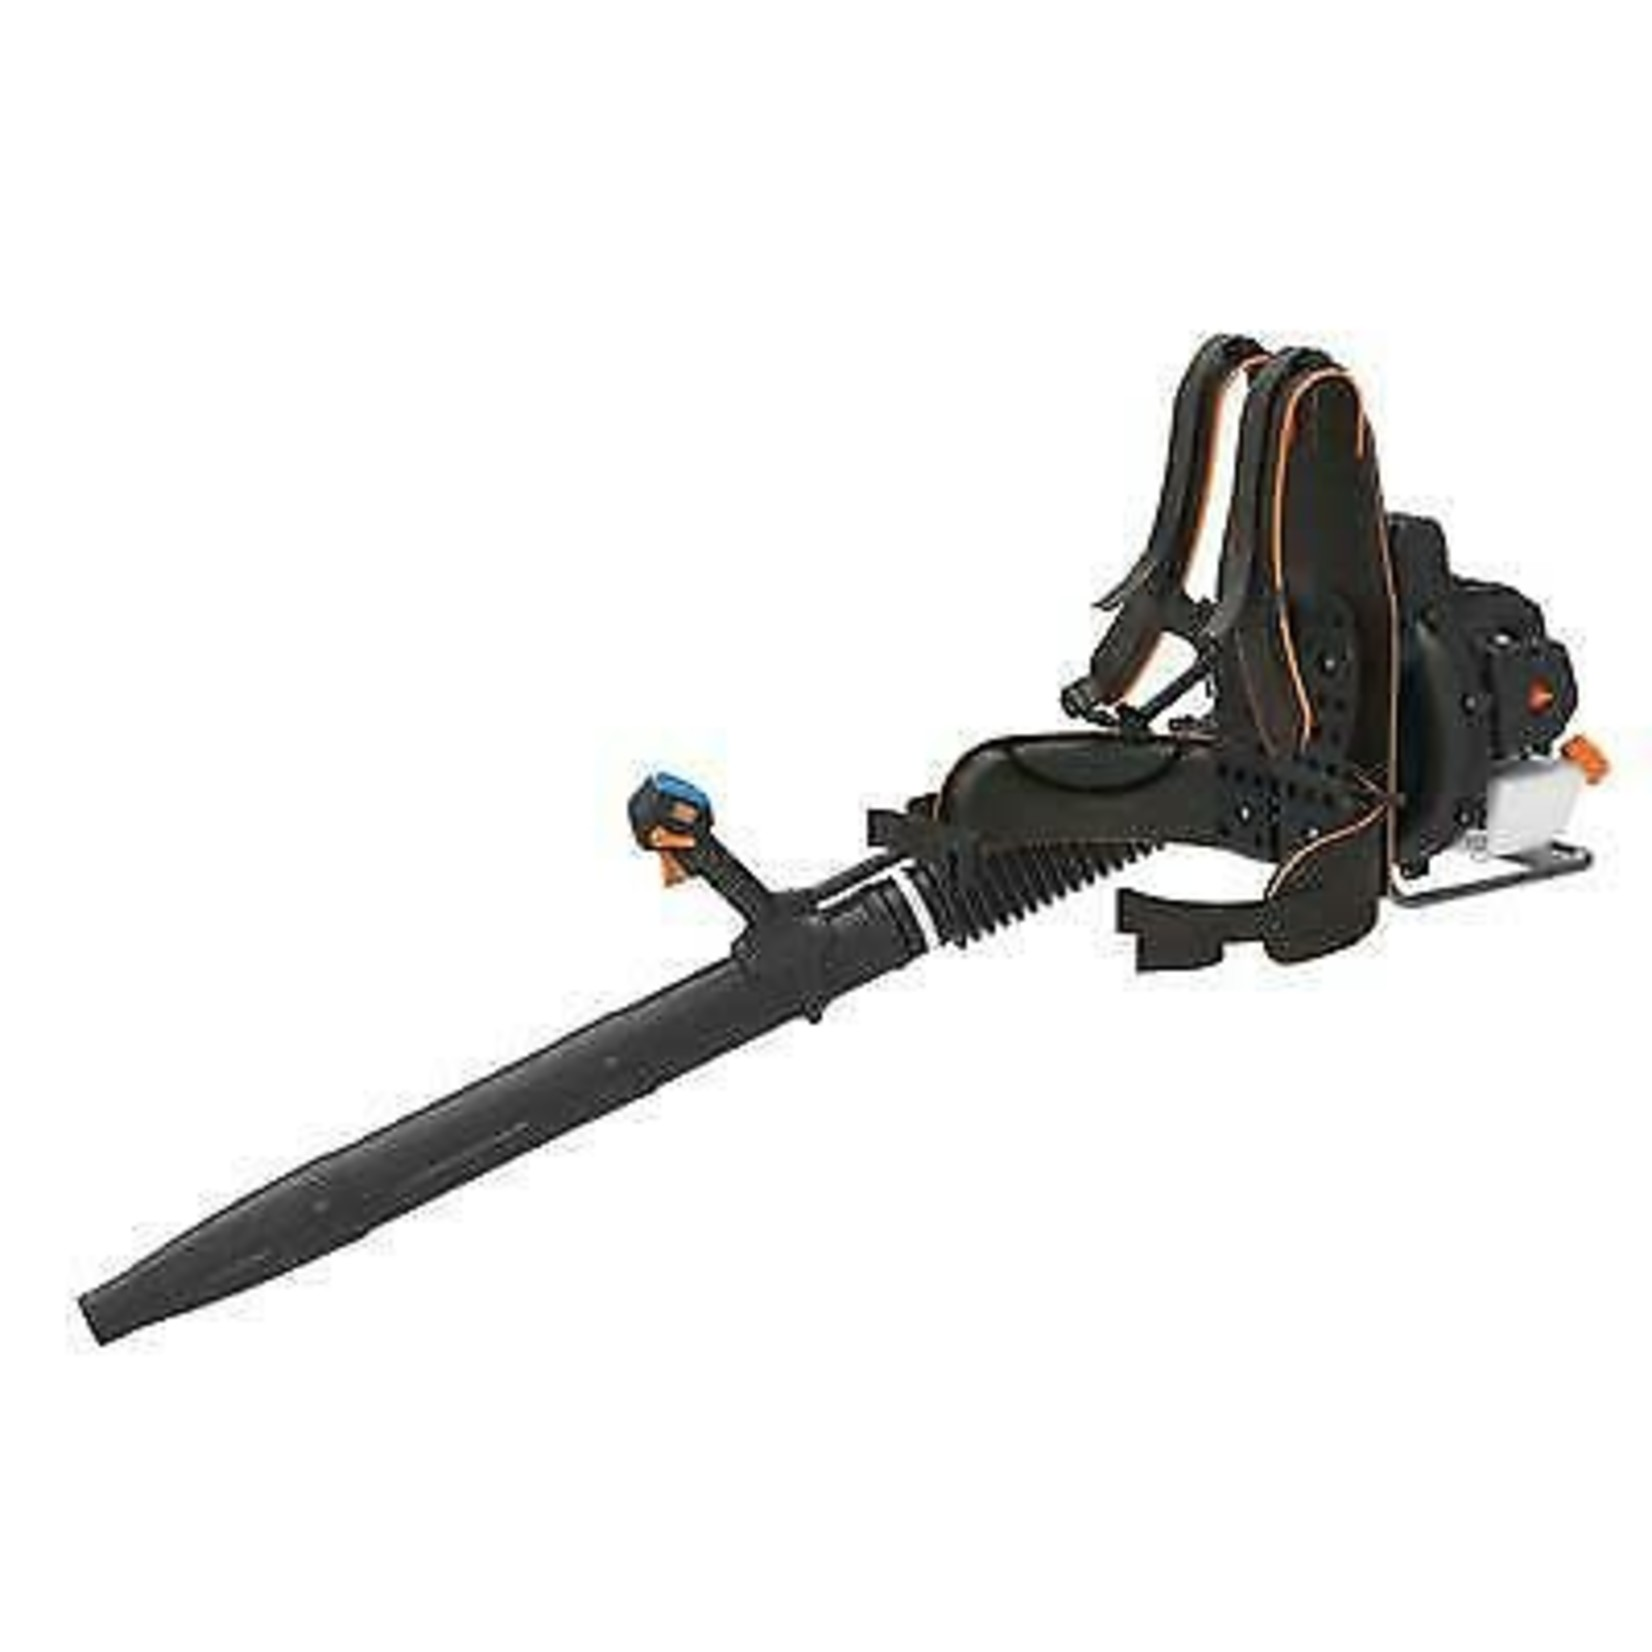 LAWNMASTER 31CC 2-CYCLE BACKPACK BLOWER NPTBL31AB